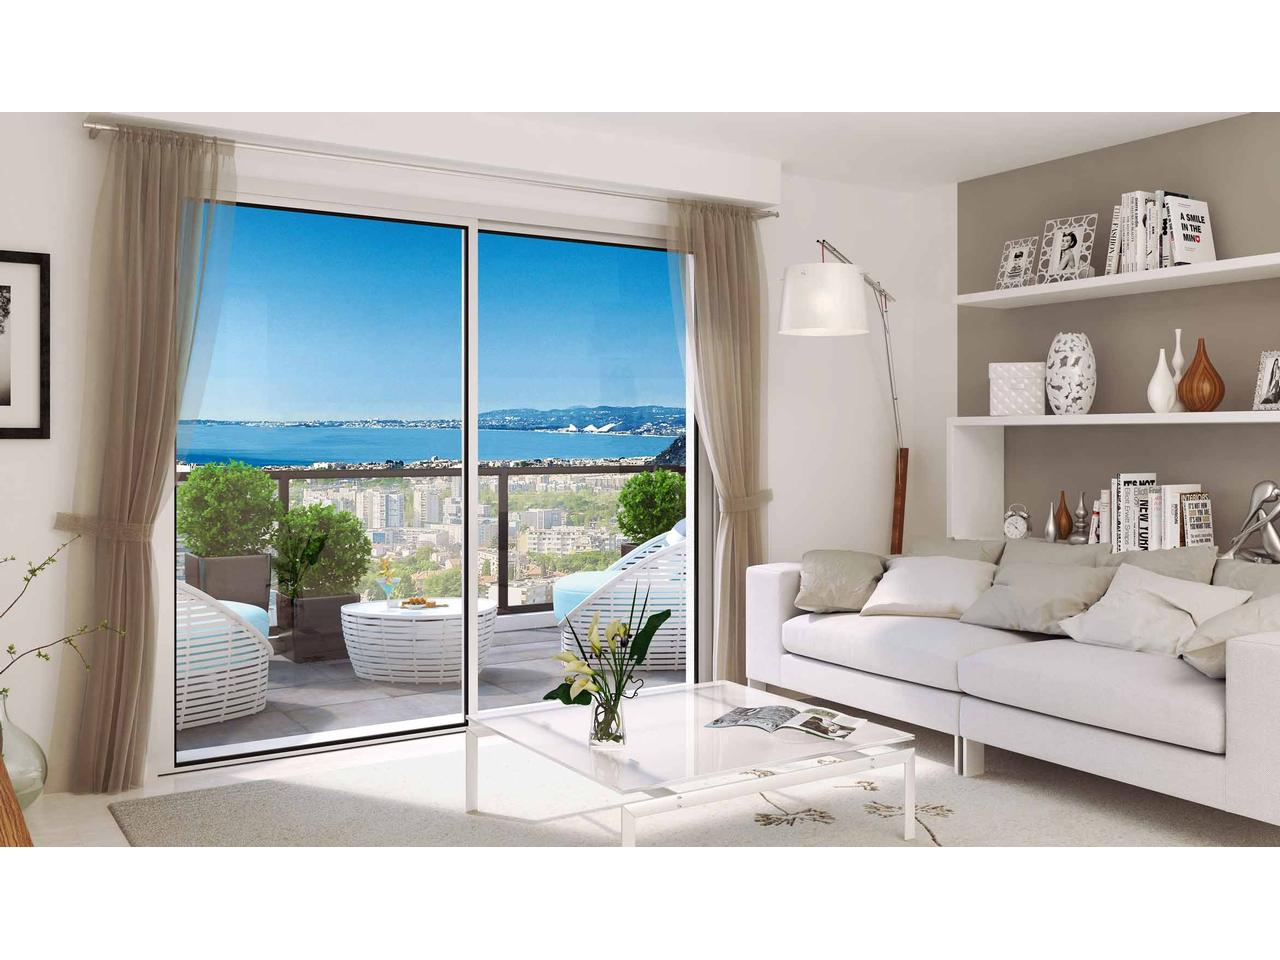 Immobilier nice vue mer appartement nice studio neuf nice - Appartement a vendre port vendres vue mer ...